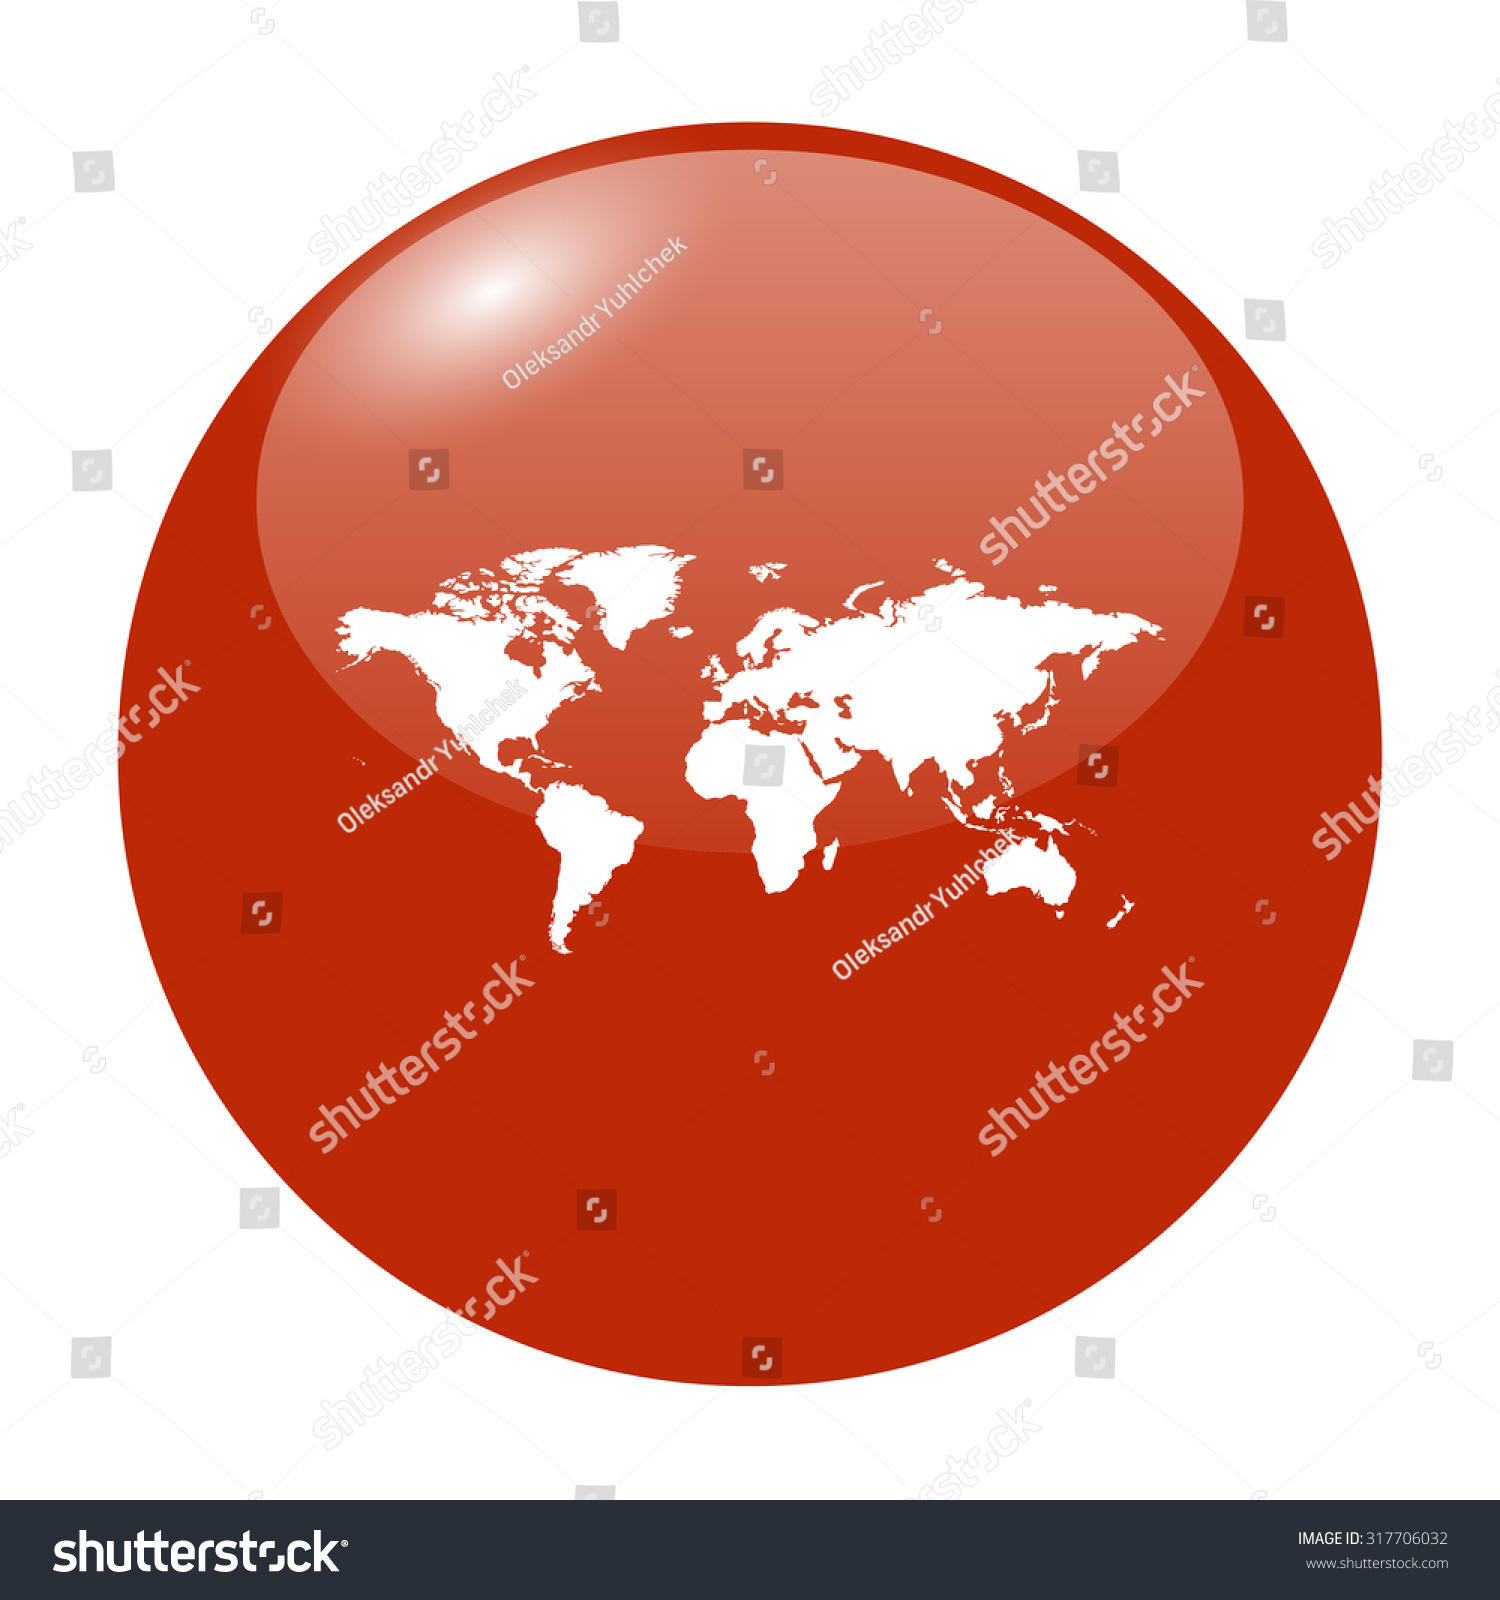 World map illustration flat design style stock vector 317706032 world map illustration flat design style eps 10 gumiabroncs Images